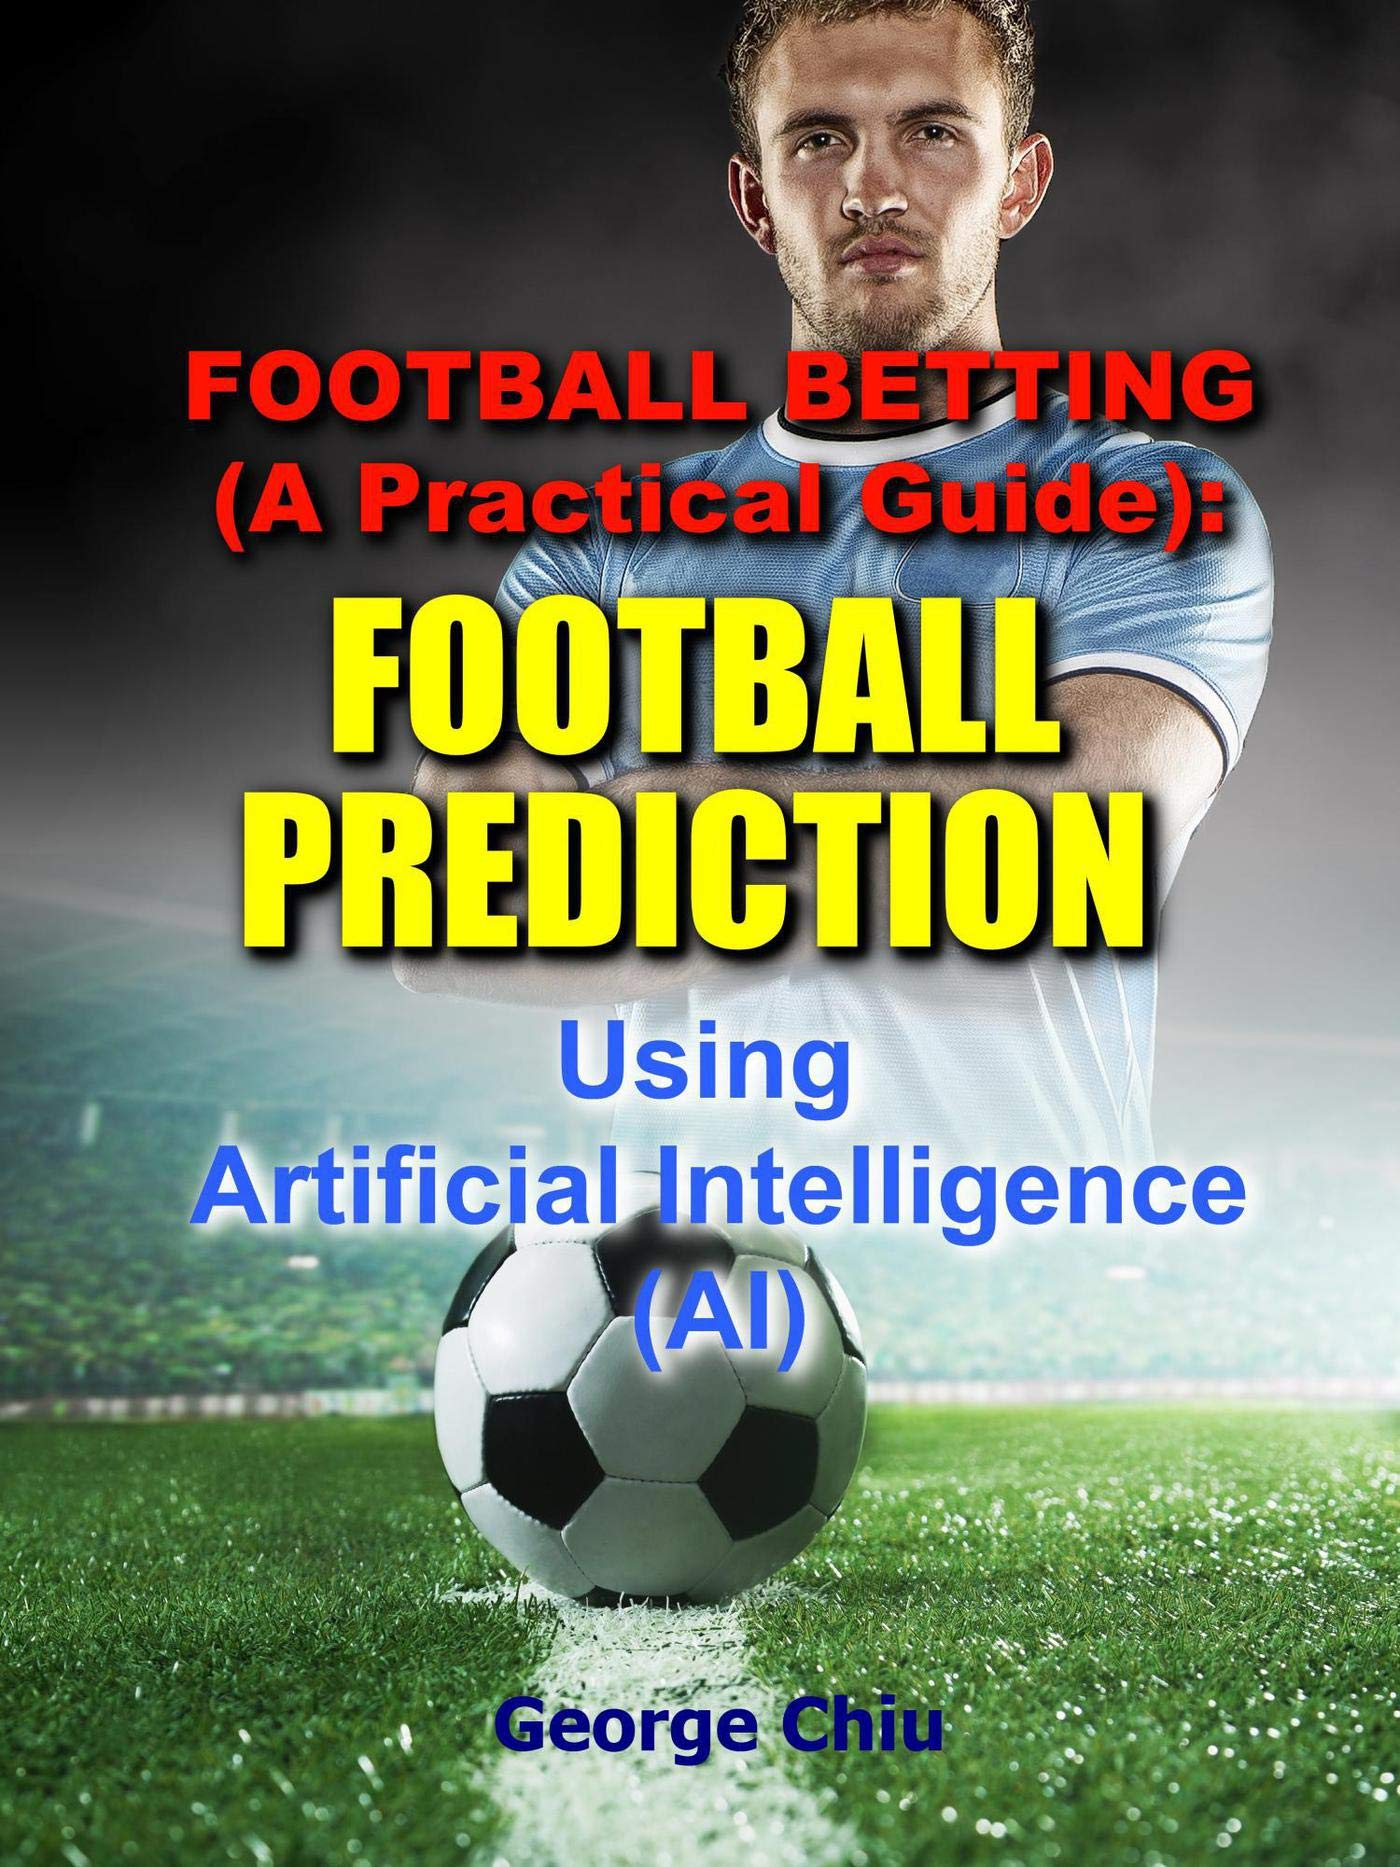 Football Betting (A Practical Guide): Football Prediction Using Artificial Intelligence (AI)